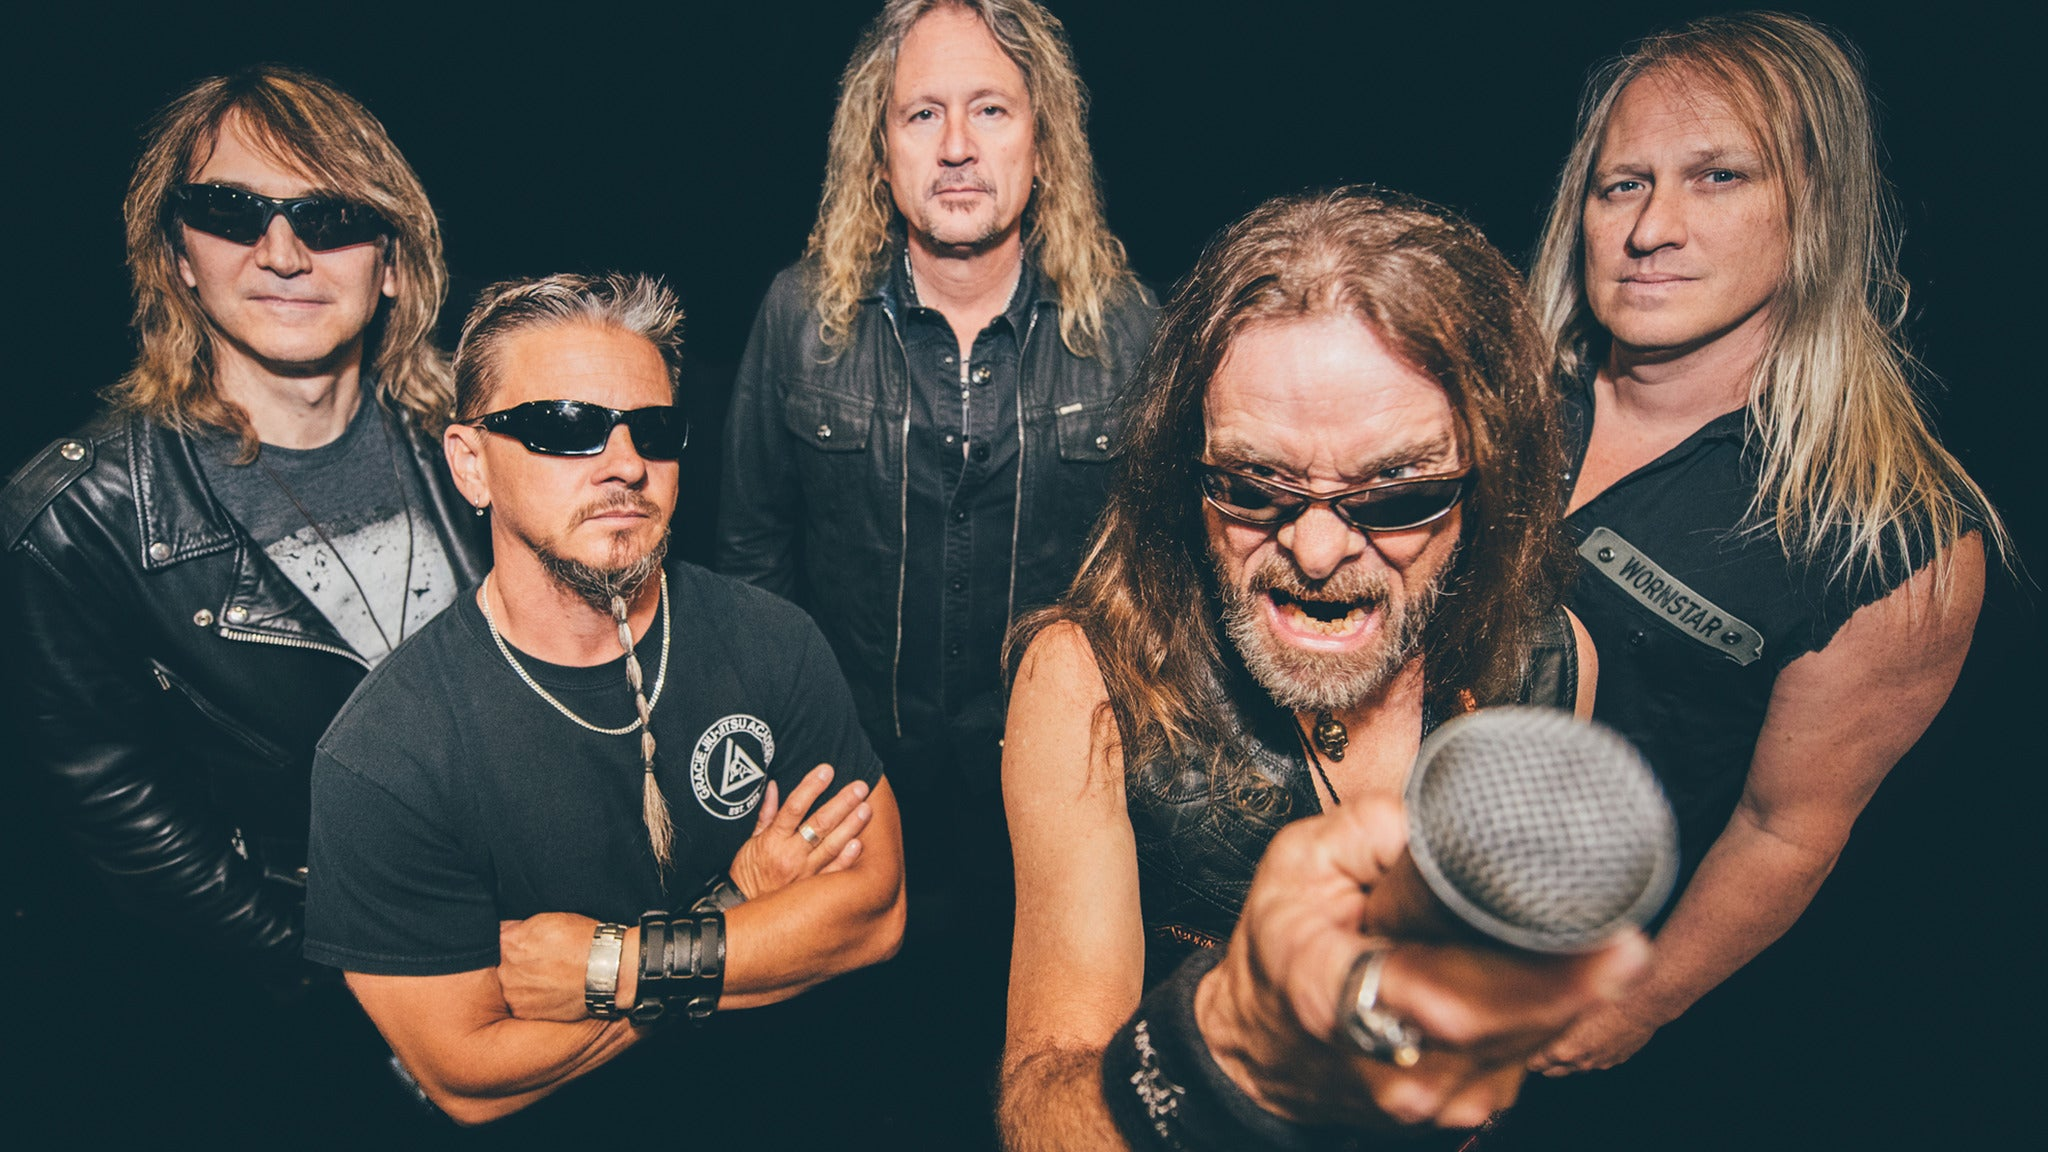 Flotsam and Jetsam w/ Dead by Wednesday at Voltage Lounge - Philadelphia, PA 19123